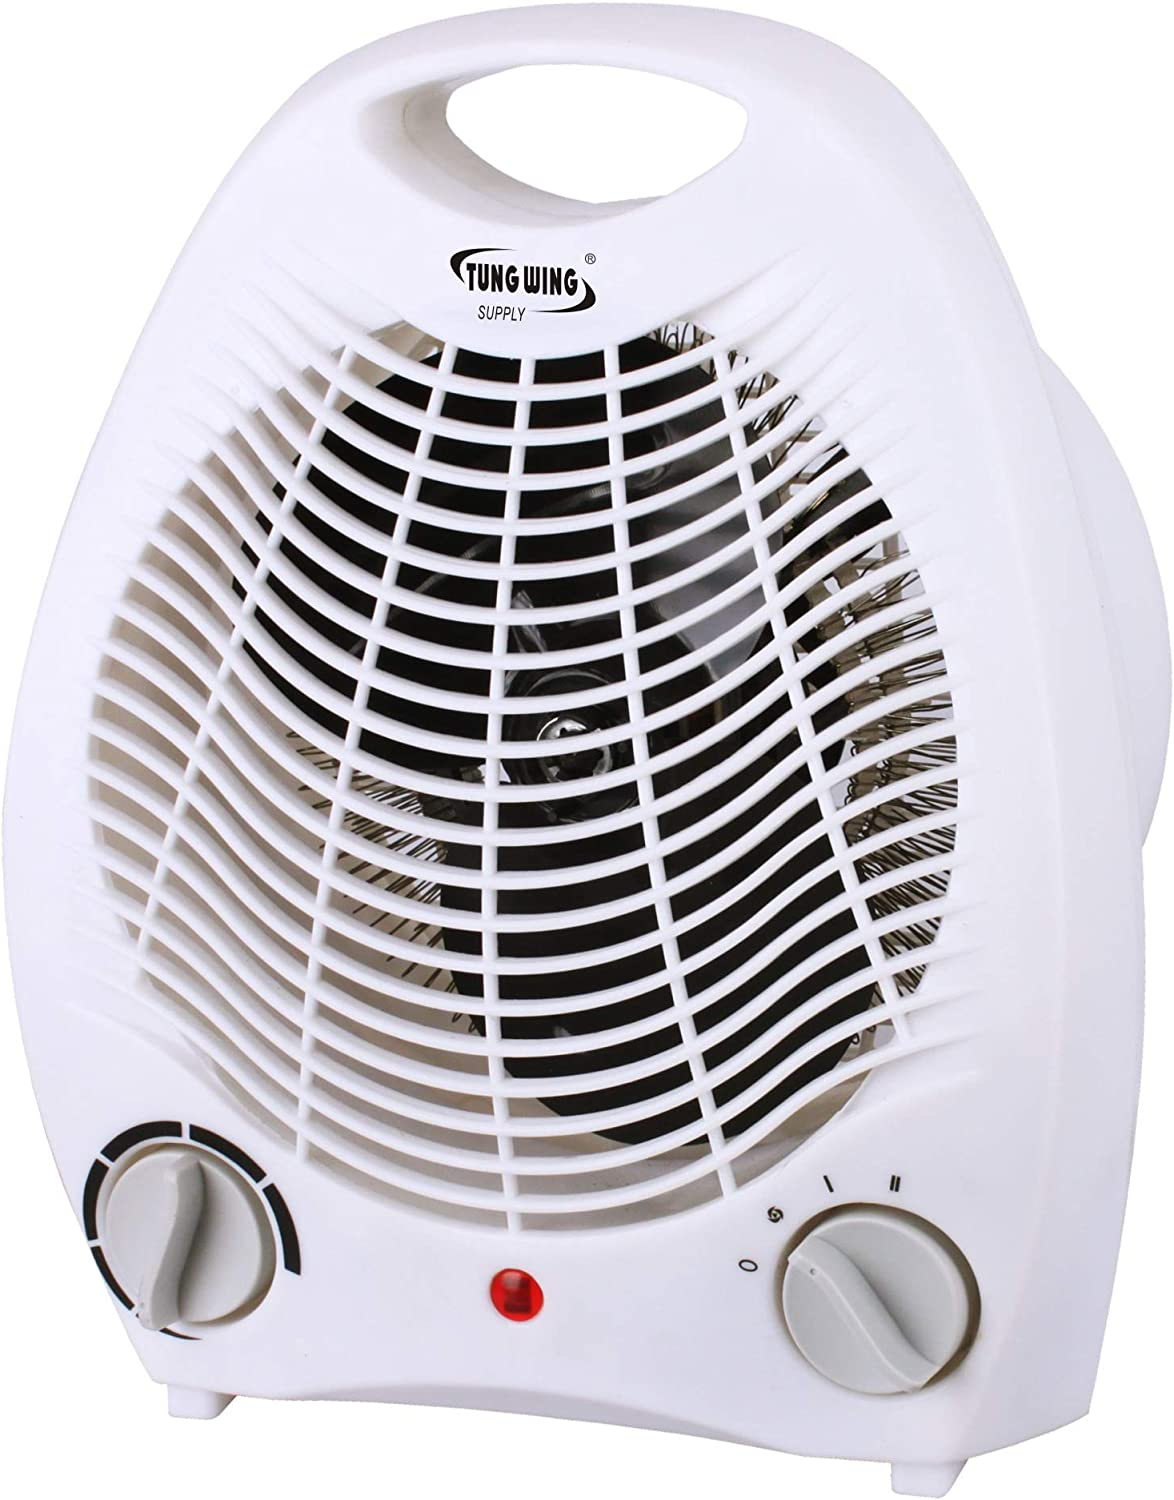 Tung Wing Supply, 1500W Fan Portable Heater with Adjustable Thermostat, Overheat and Tip-Over Protection - Perfect For Home & Office-CE, GS, ROHS, ETL Certificated